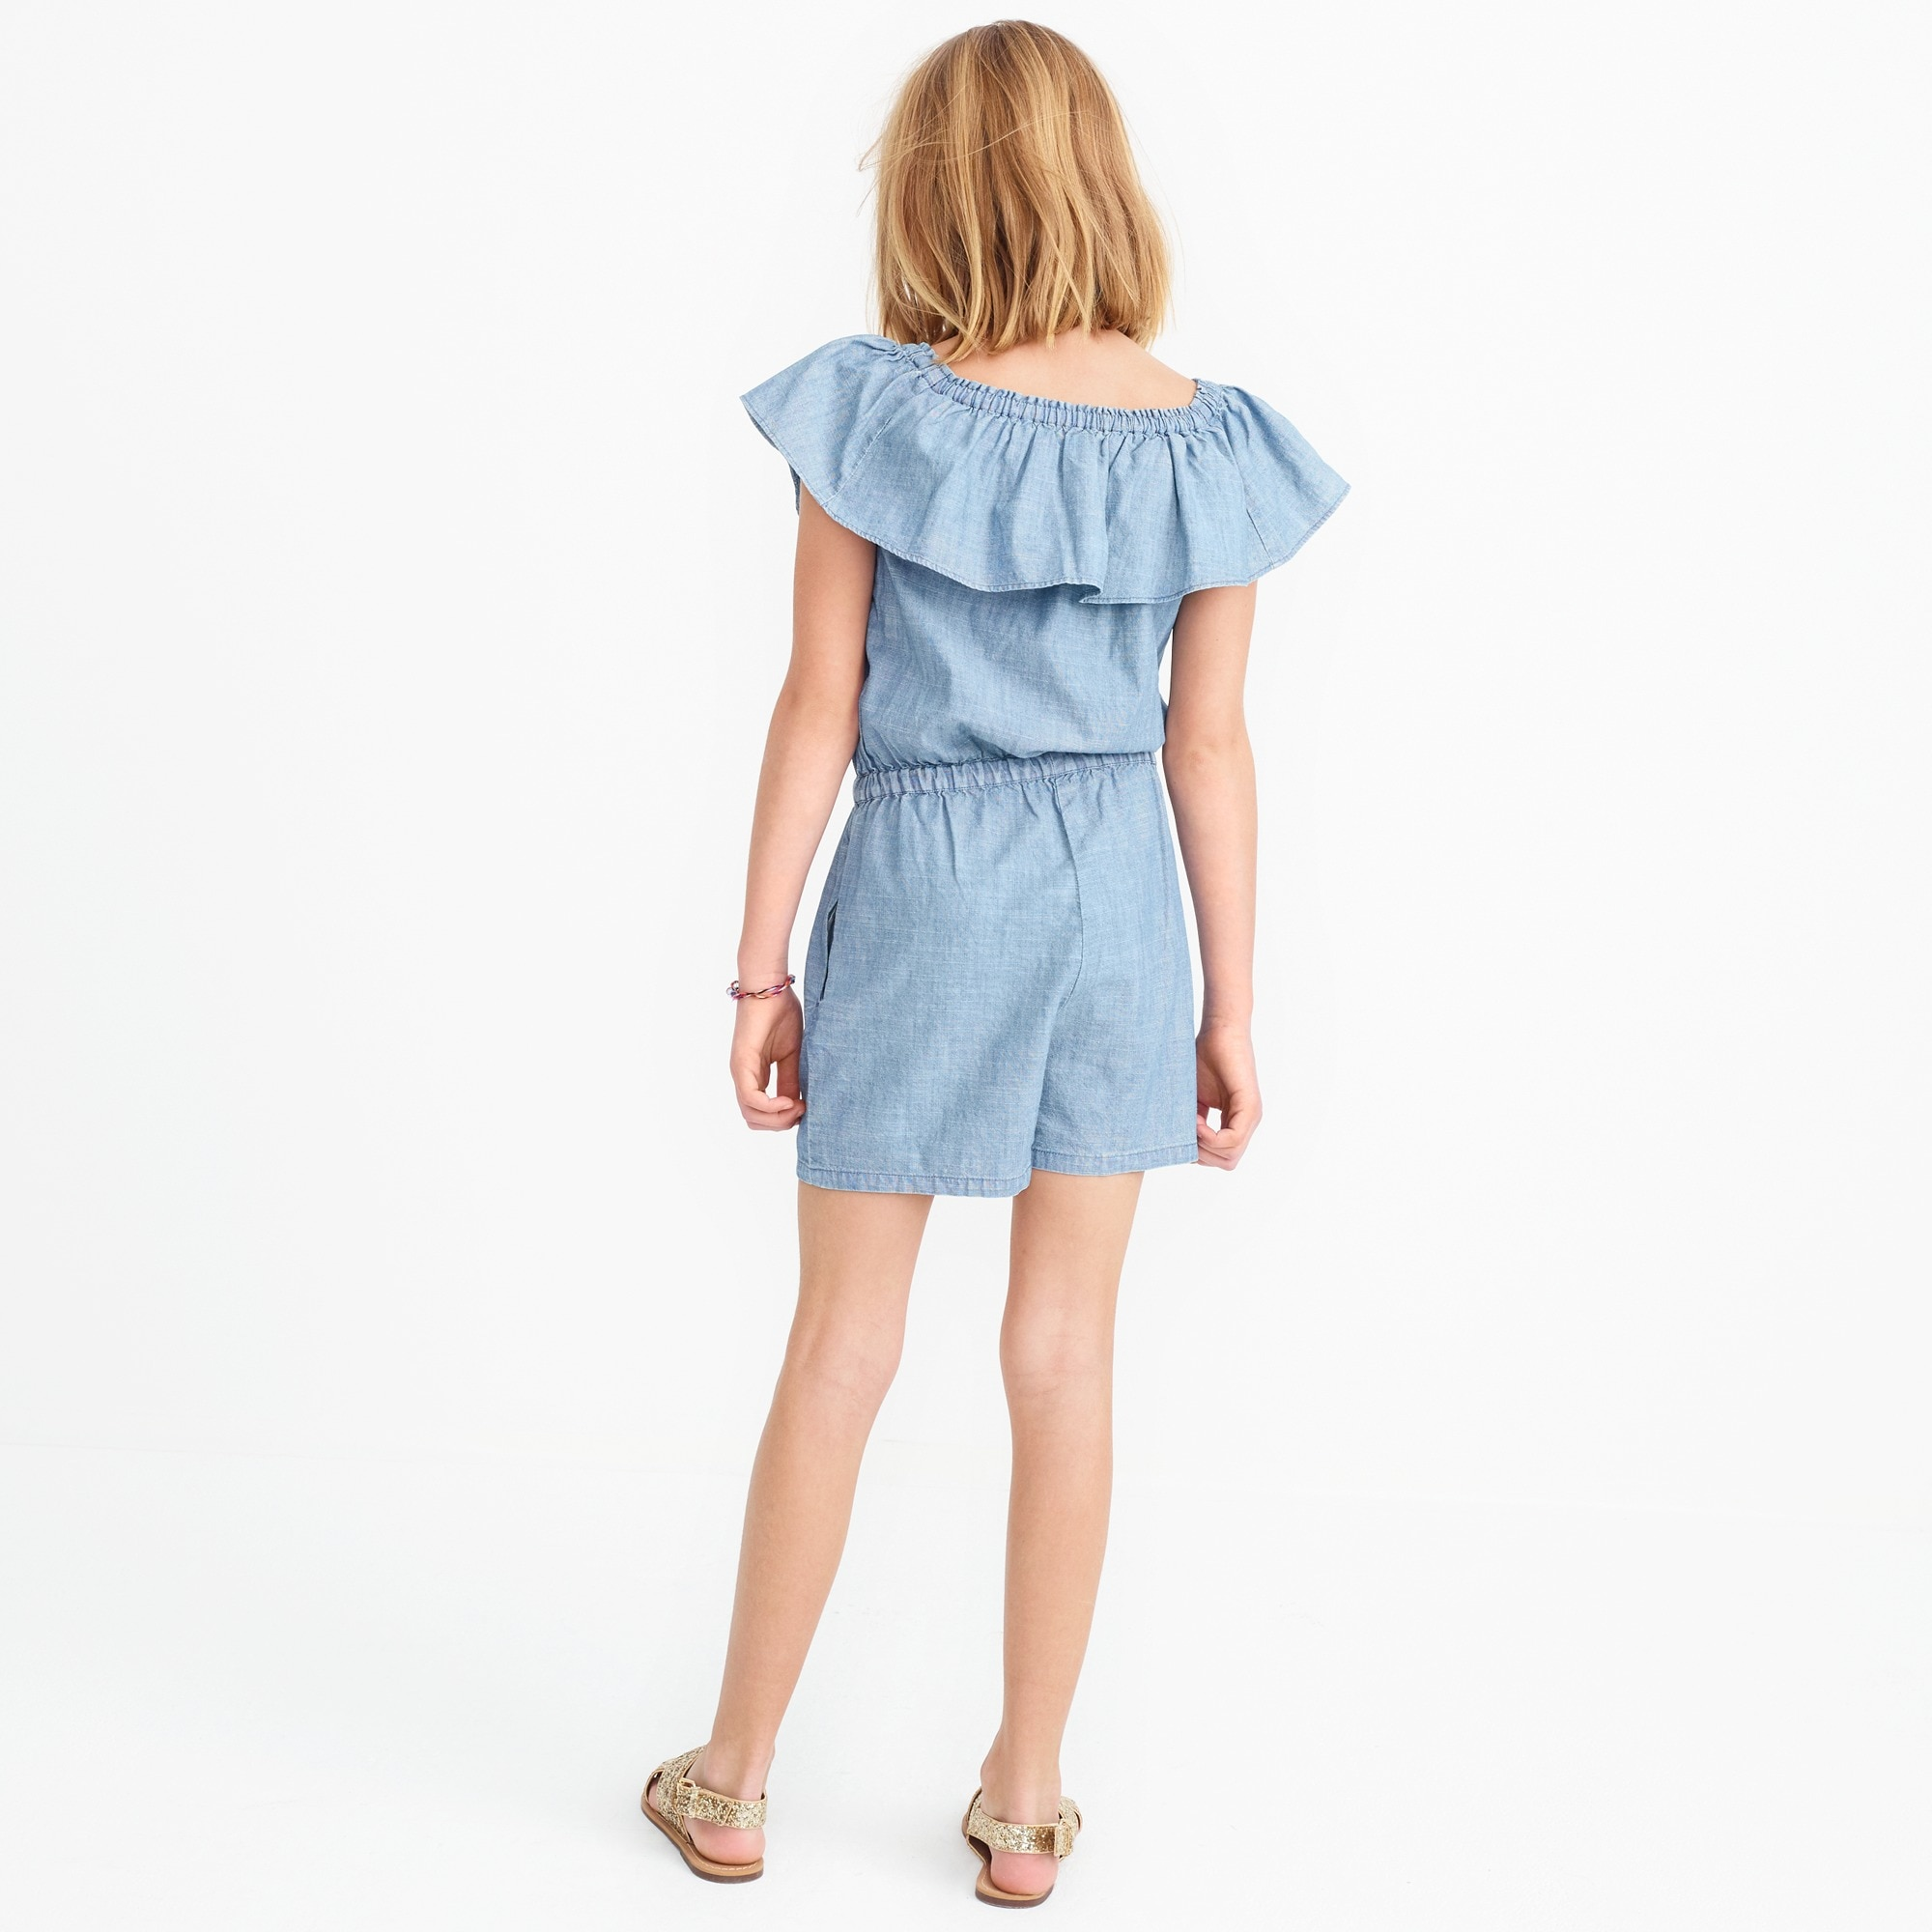 Image 3 for Girls' off-the-shoulder romper in chambray